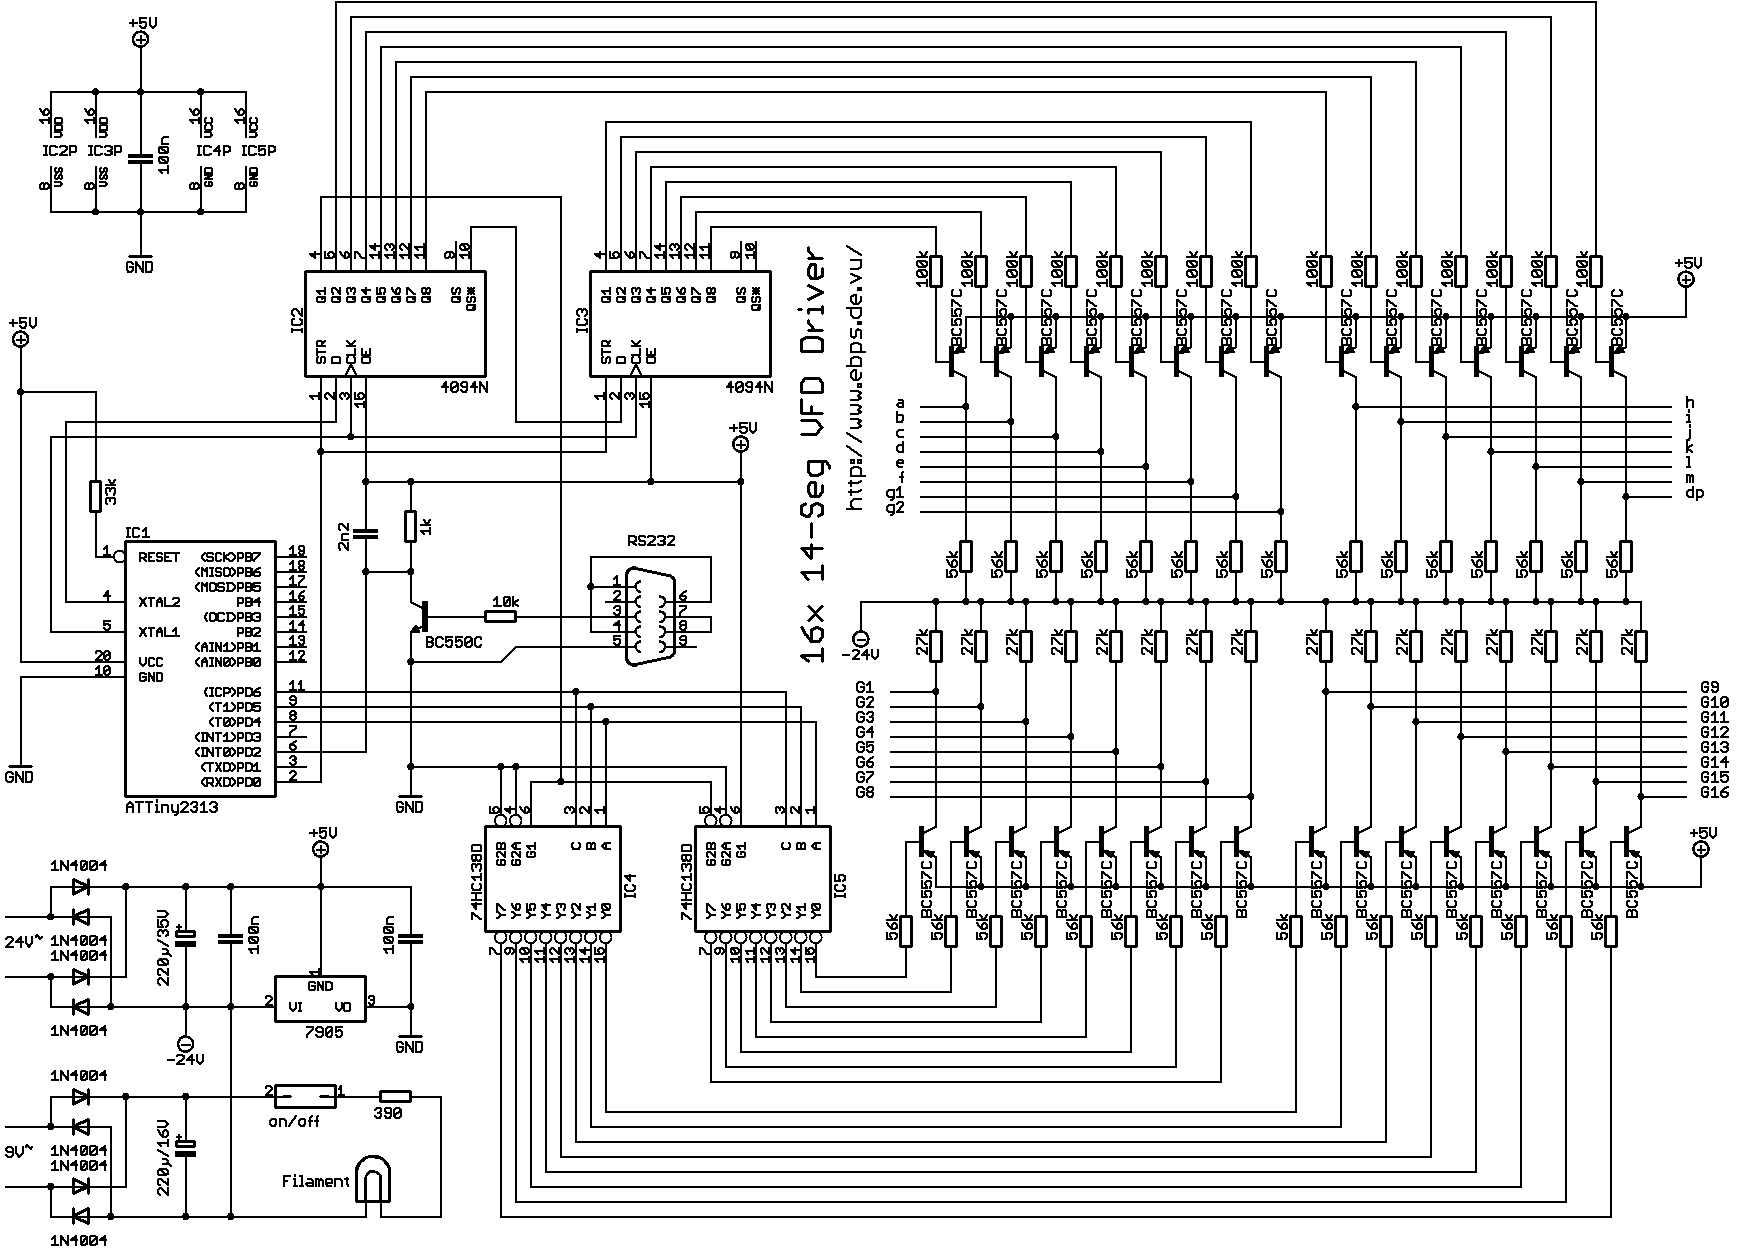 Magnificent Afm Vg30 E Engine Wiring Diagram Sketch - Everything You ...